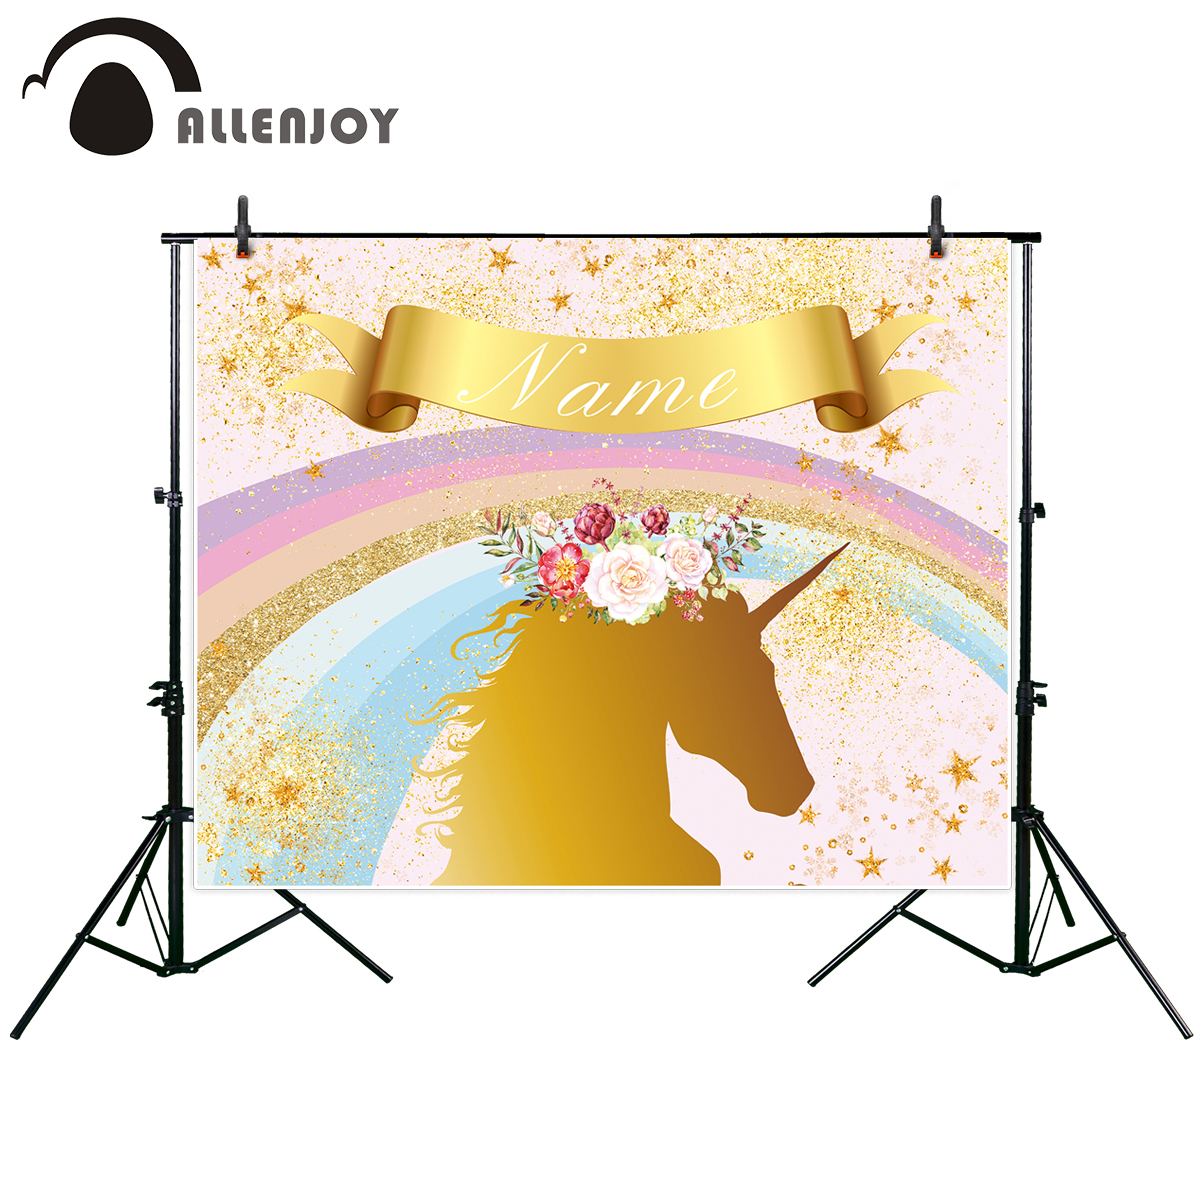 Allenjoy photographic background Golden Rainbow Unicorn Children Flowers Birthday photo studio photocall family party backdrop allenjoy photo backdrop retro vintage flowers noble mystery professional vinyl background pictures background for photo studio